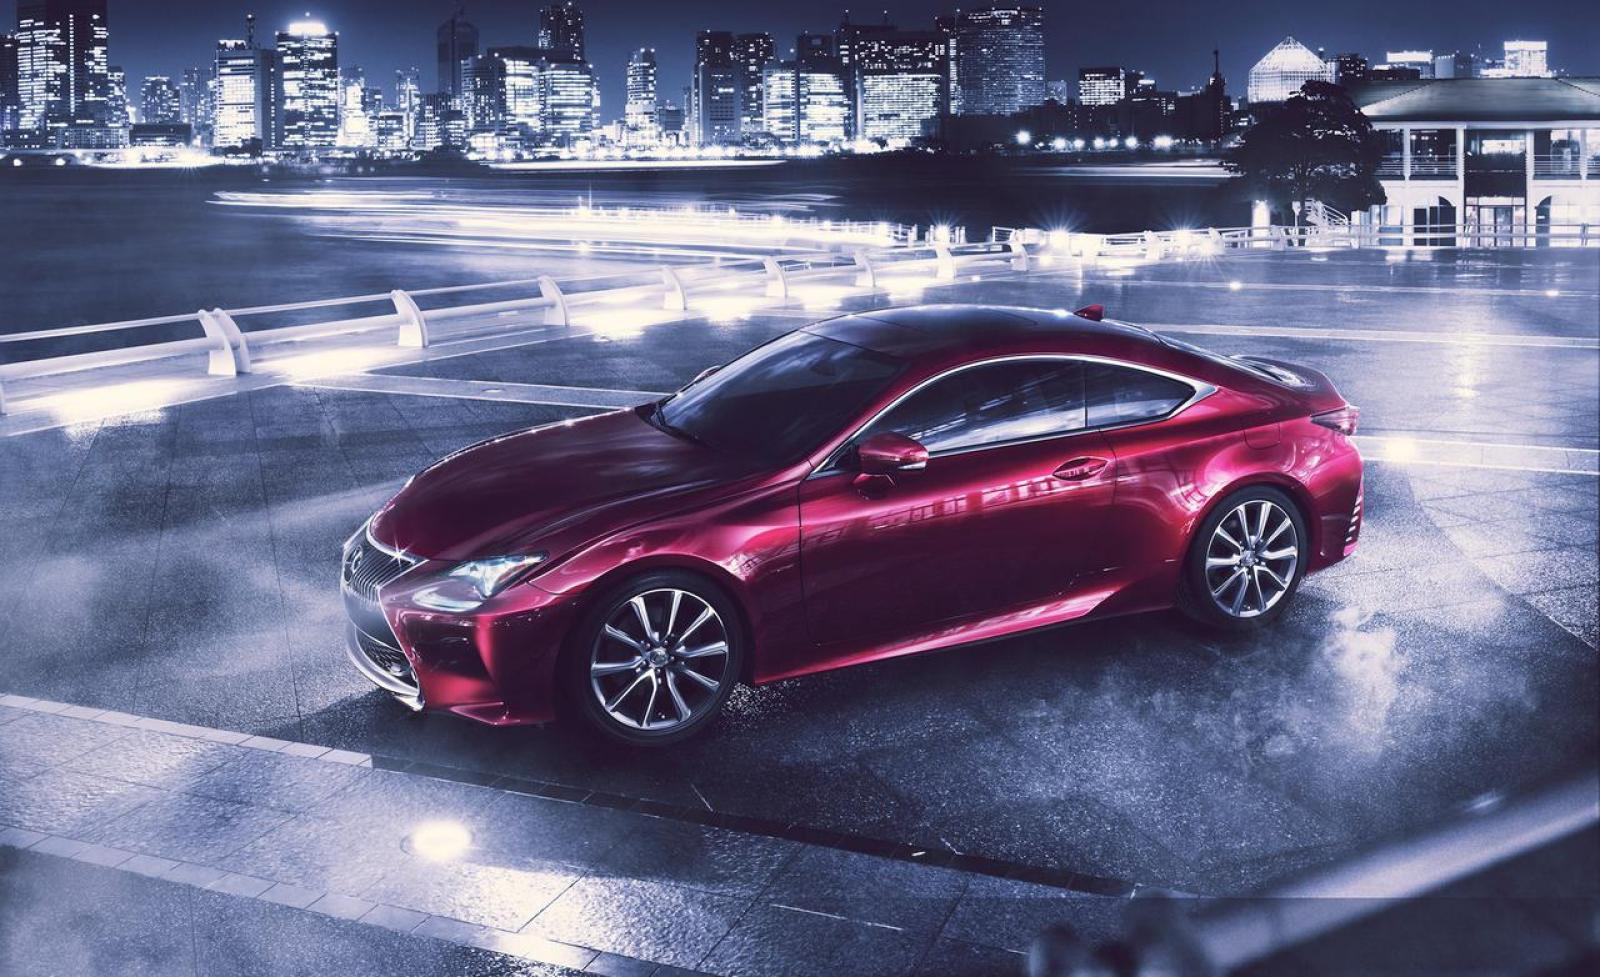 2015 infiniti q60 image collections hd cars wallpaper 2015 infiniti q60 coupe information and photos zombiedrive 800 1024 1280 1600 origin 2015 infiniti q60 vanachro Image collections